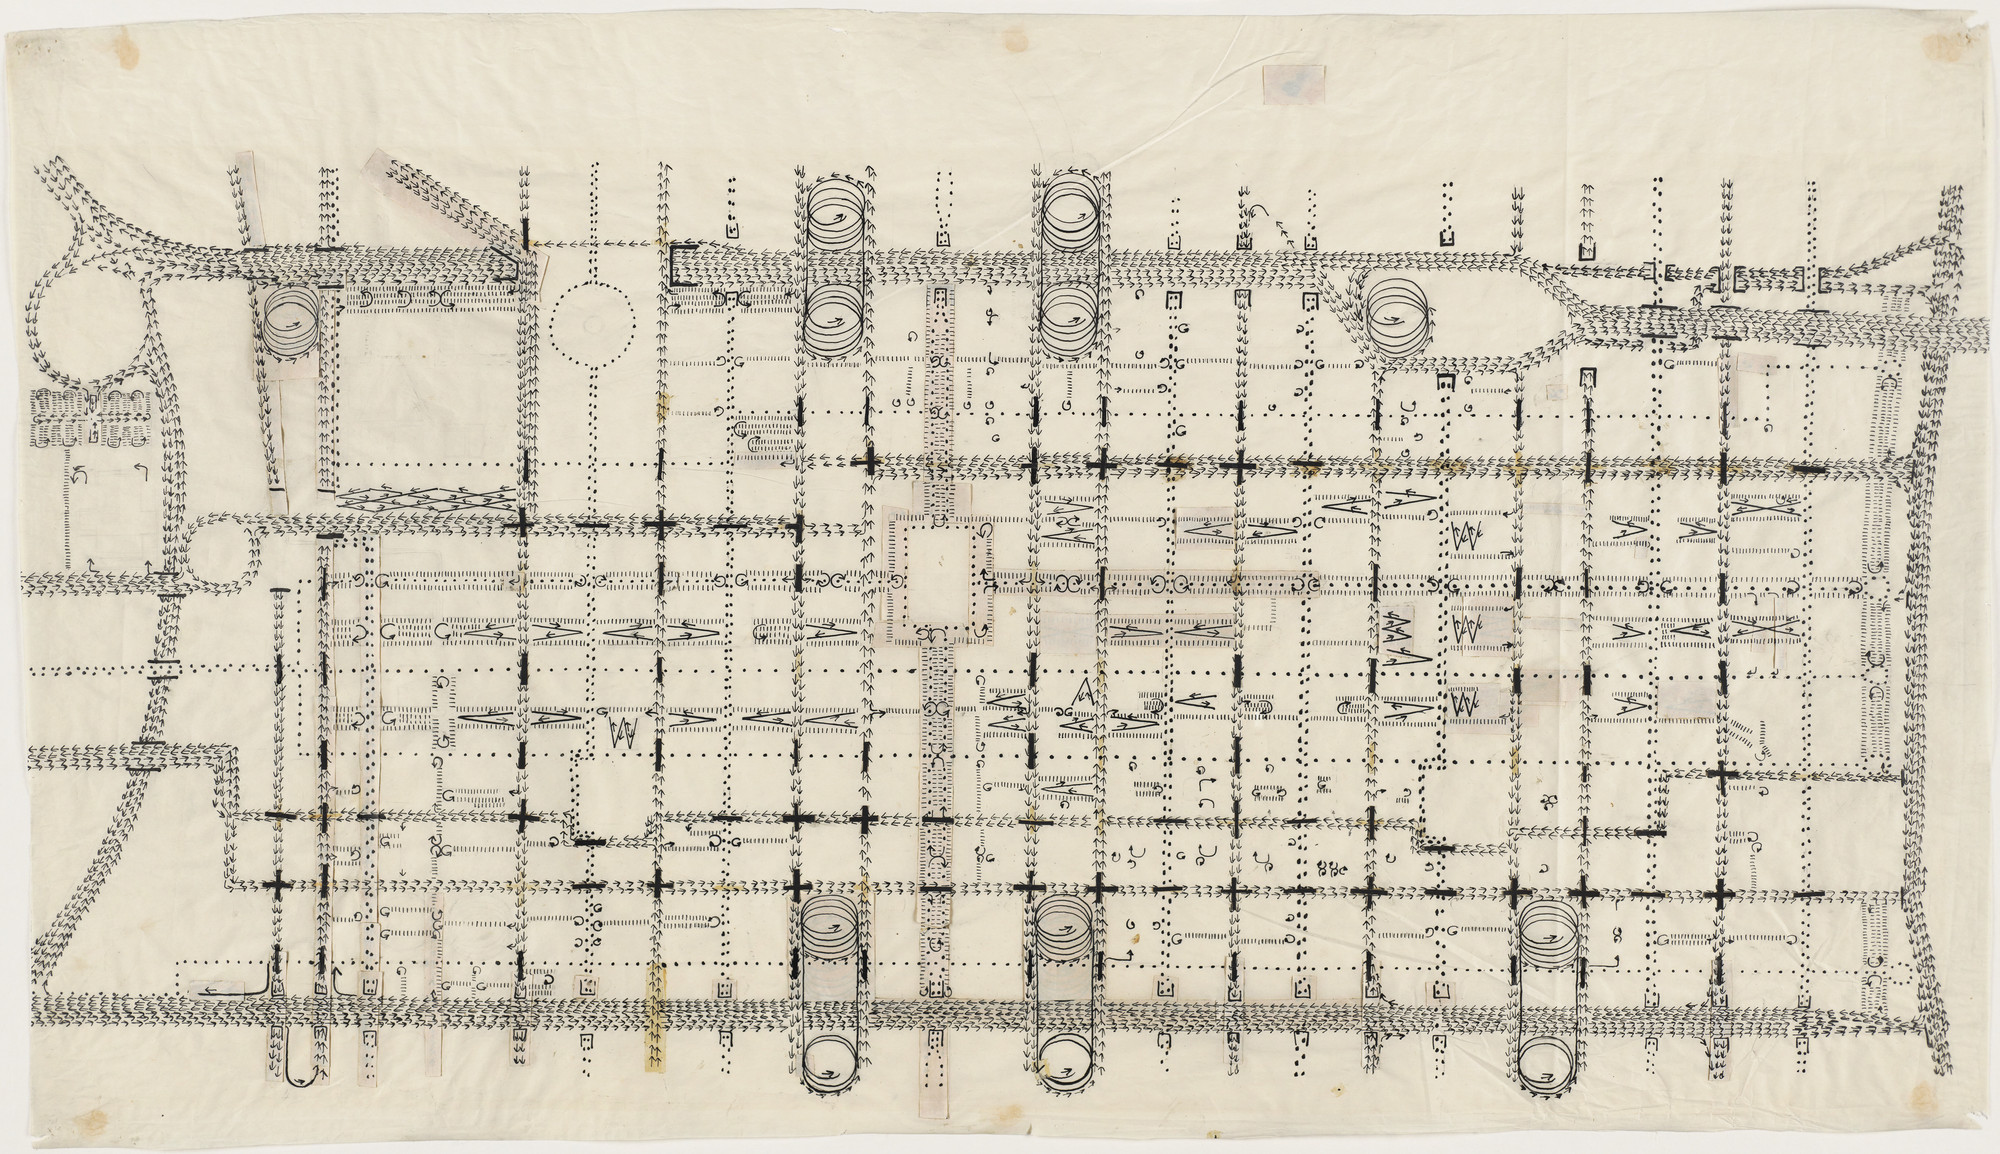 Life and work of louis kahn architecture essay